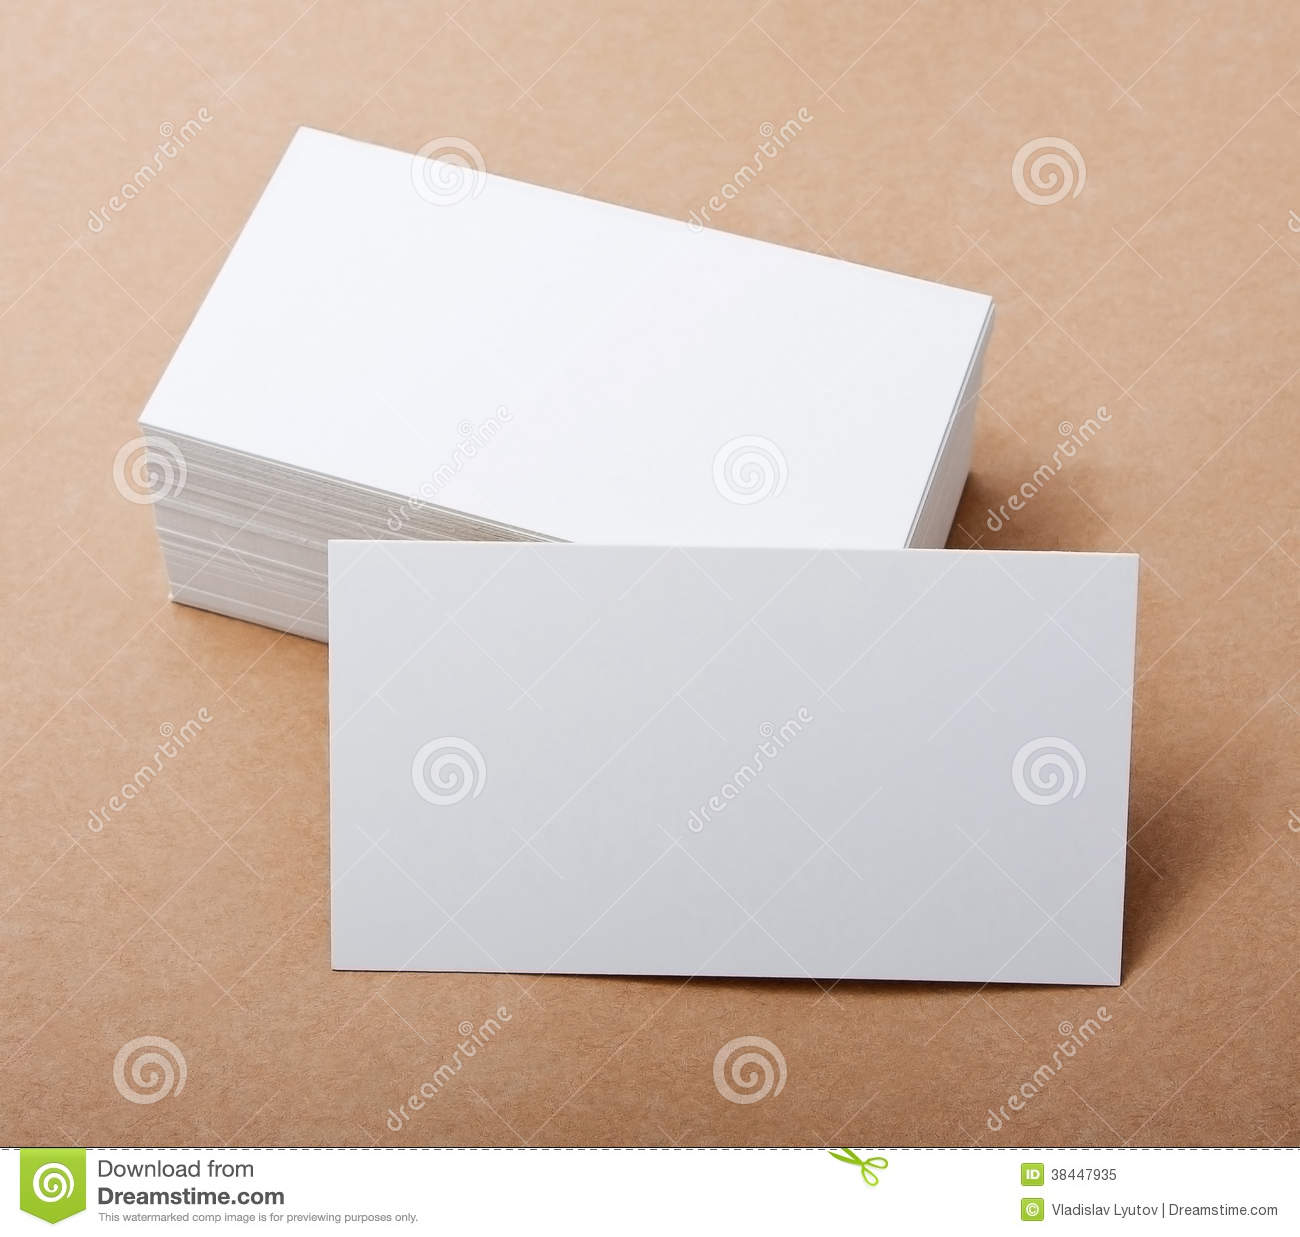 Blank Business Cards Royalty Free Stock Image